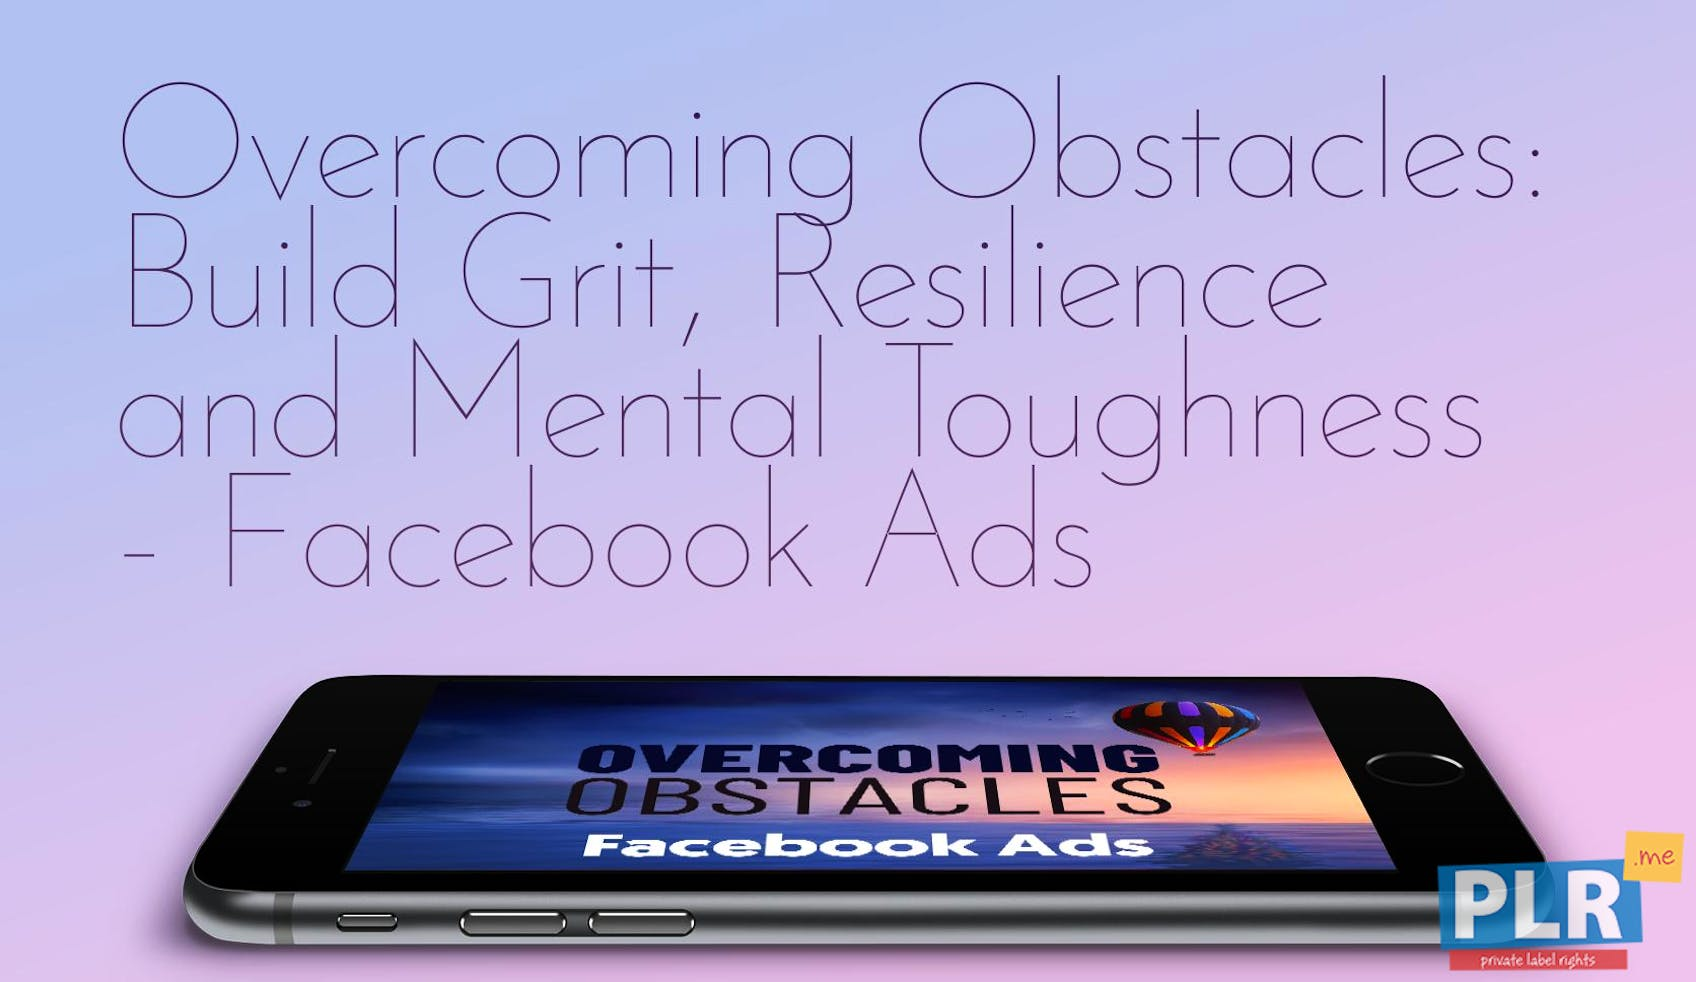 Overcoming Obstacles: Build Grit, Resilience And Mental Toughness - Facebook Ads